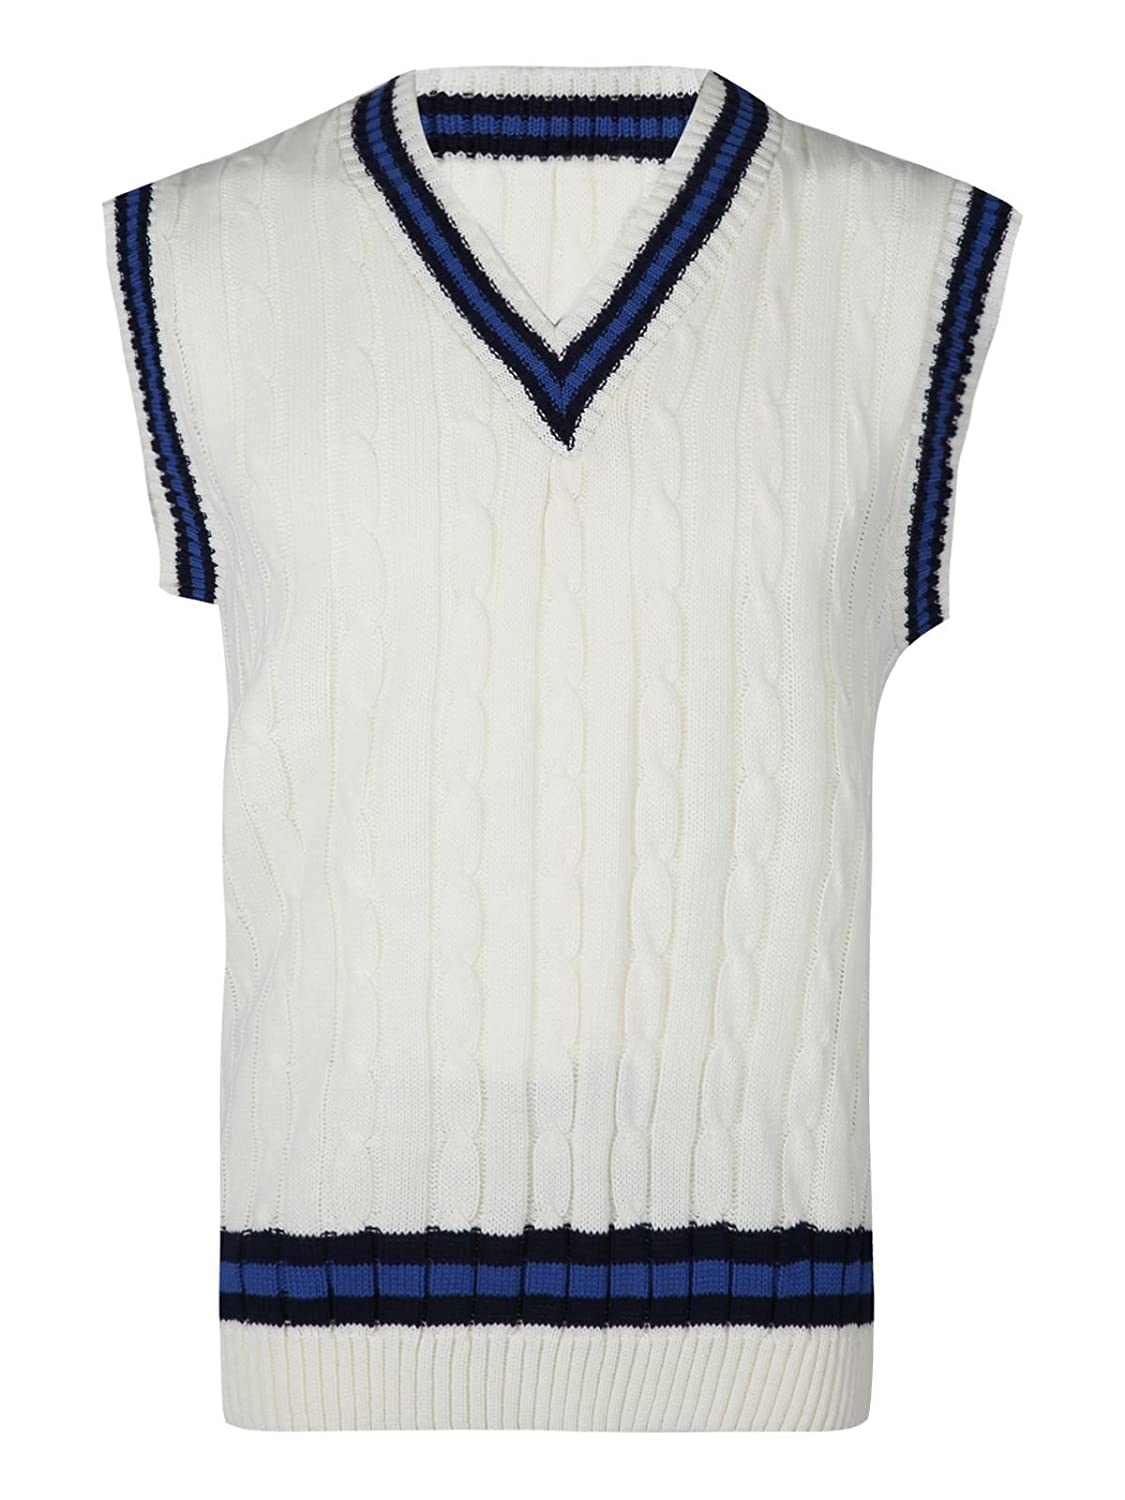 Men's Vintage Vests, Sweater Vests Cricket Cable Knitted Tank Top Boys Sleeveless V Neck Ribbed Top S M L XL $18.99 AT vintagedancer.com